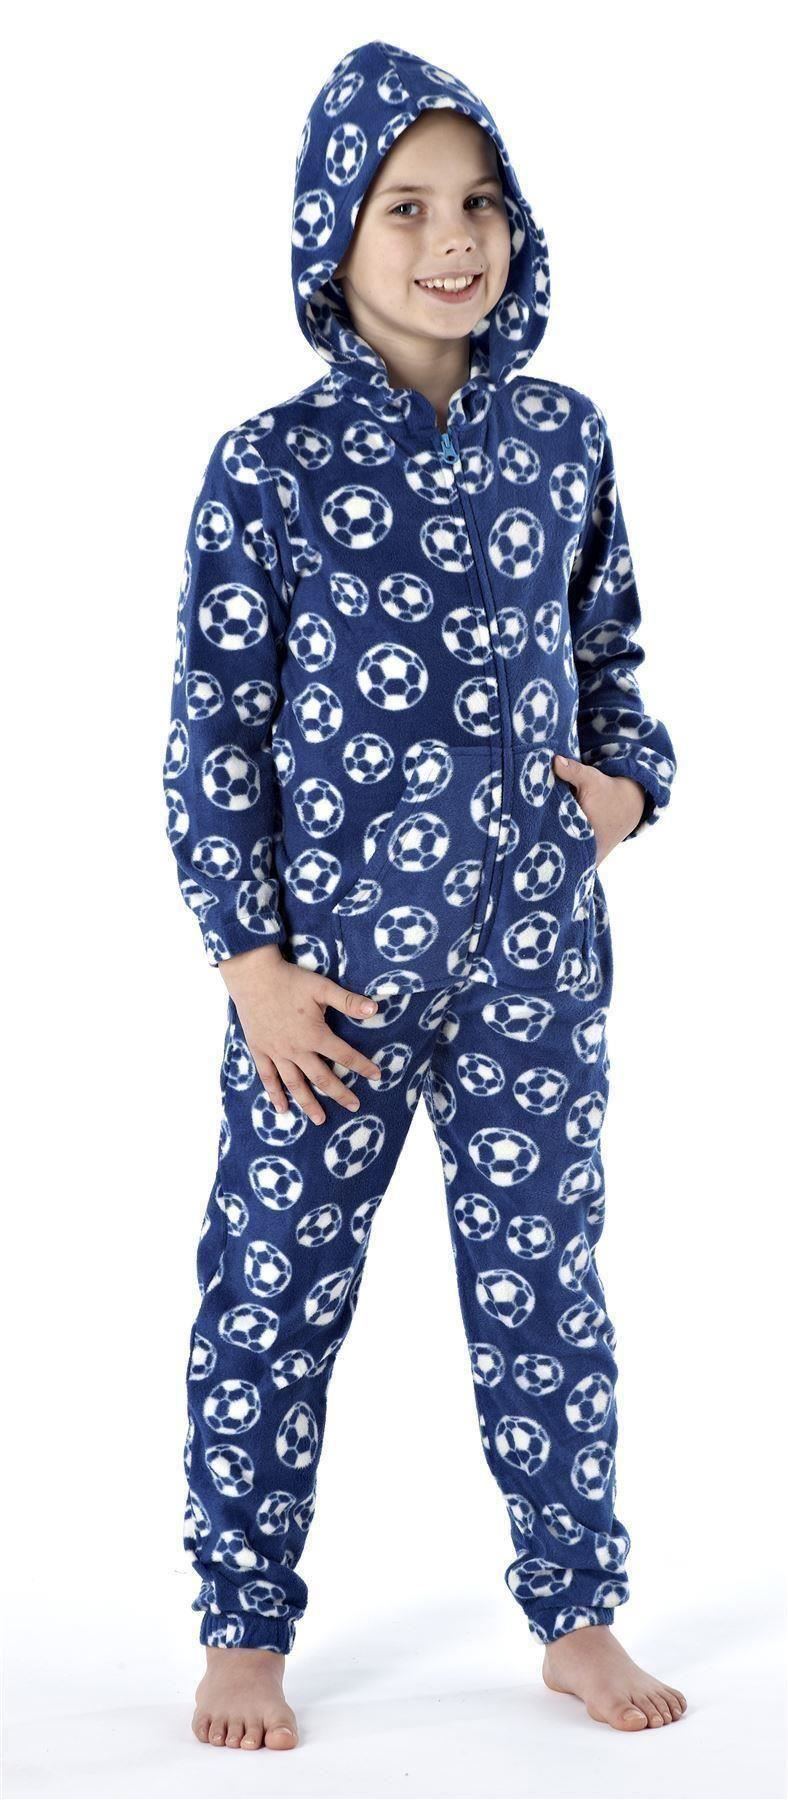 Shop NFL pajamas at Fanatics. Find looks in the latest NFL pajamas, PJs and more from top brands at Fanatics today.